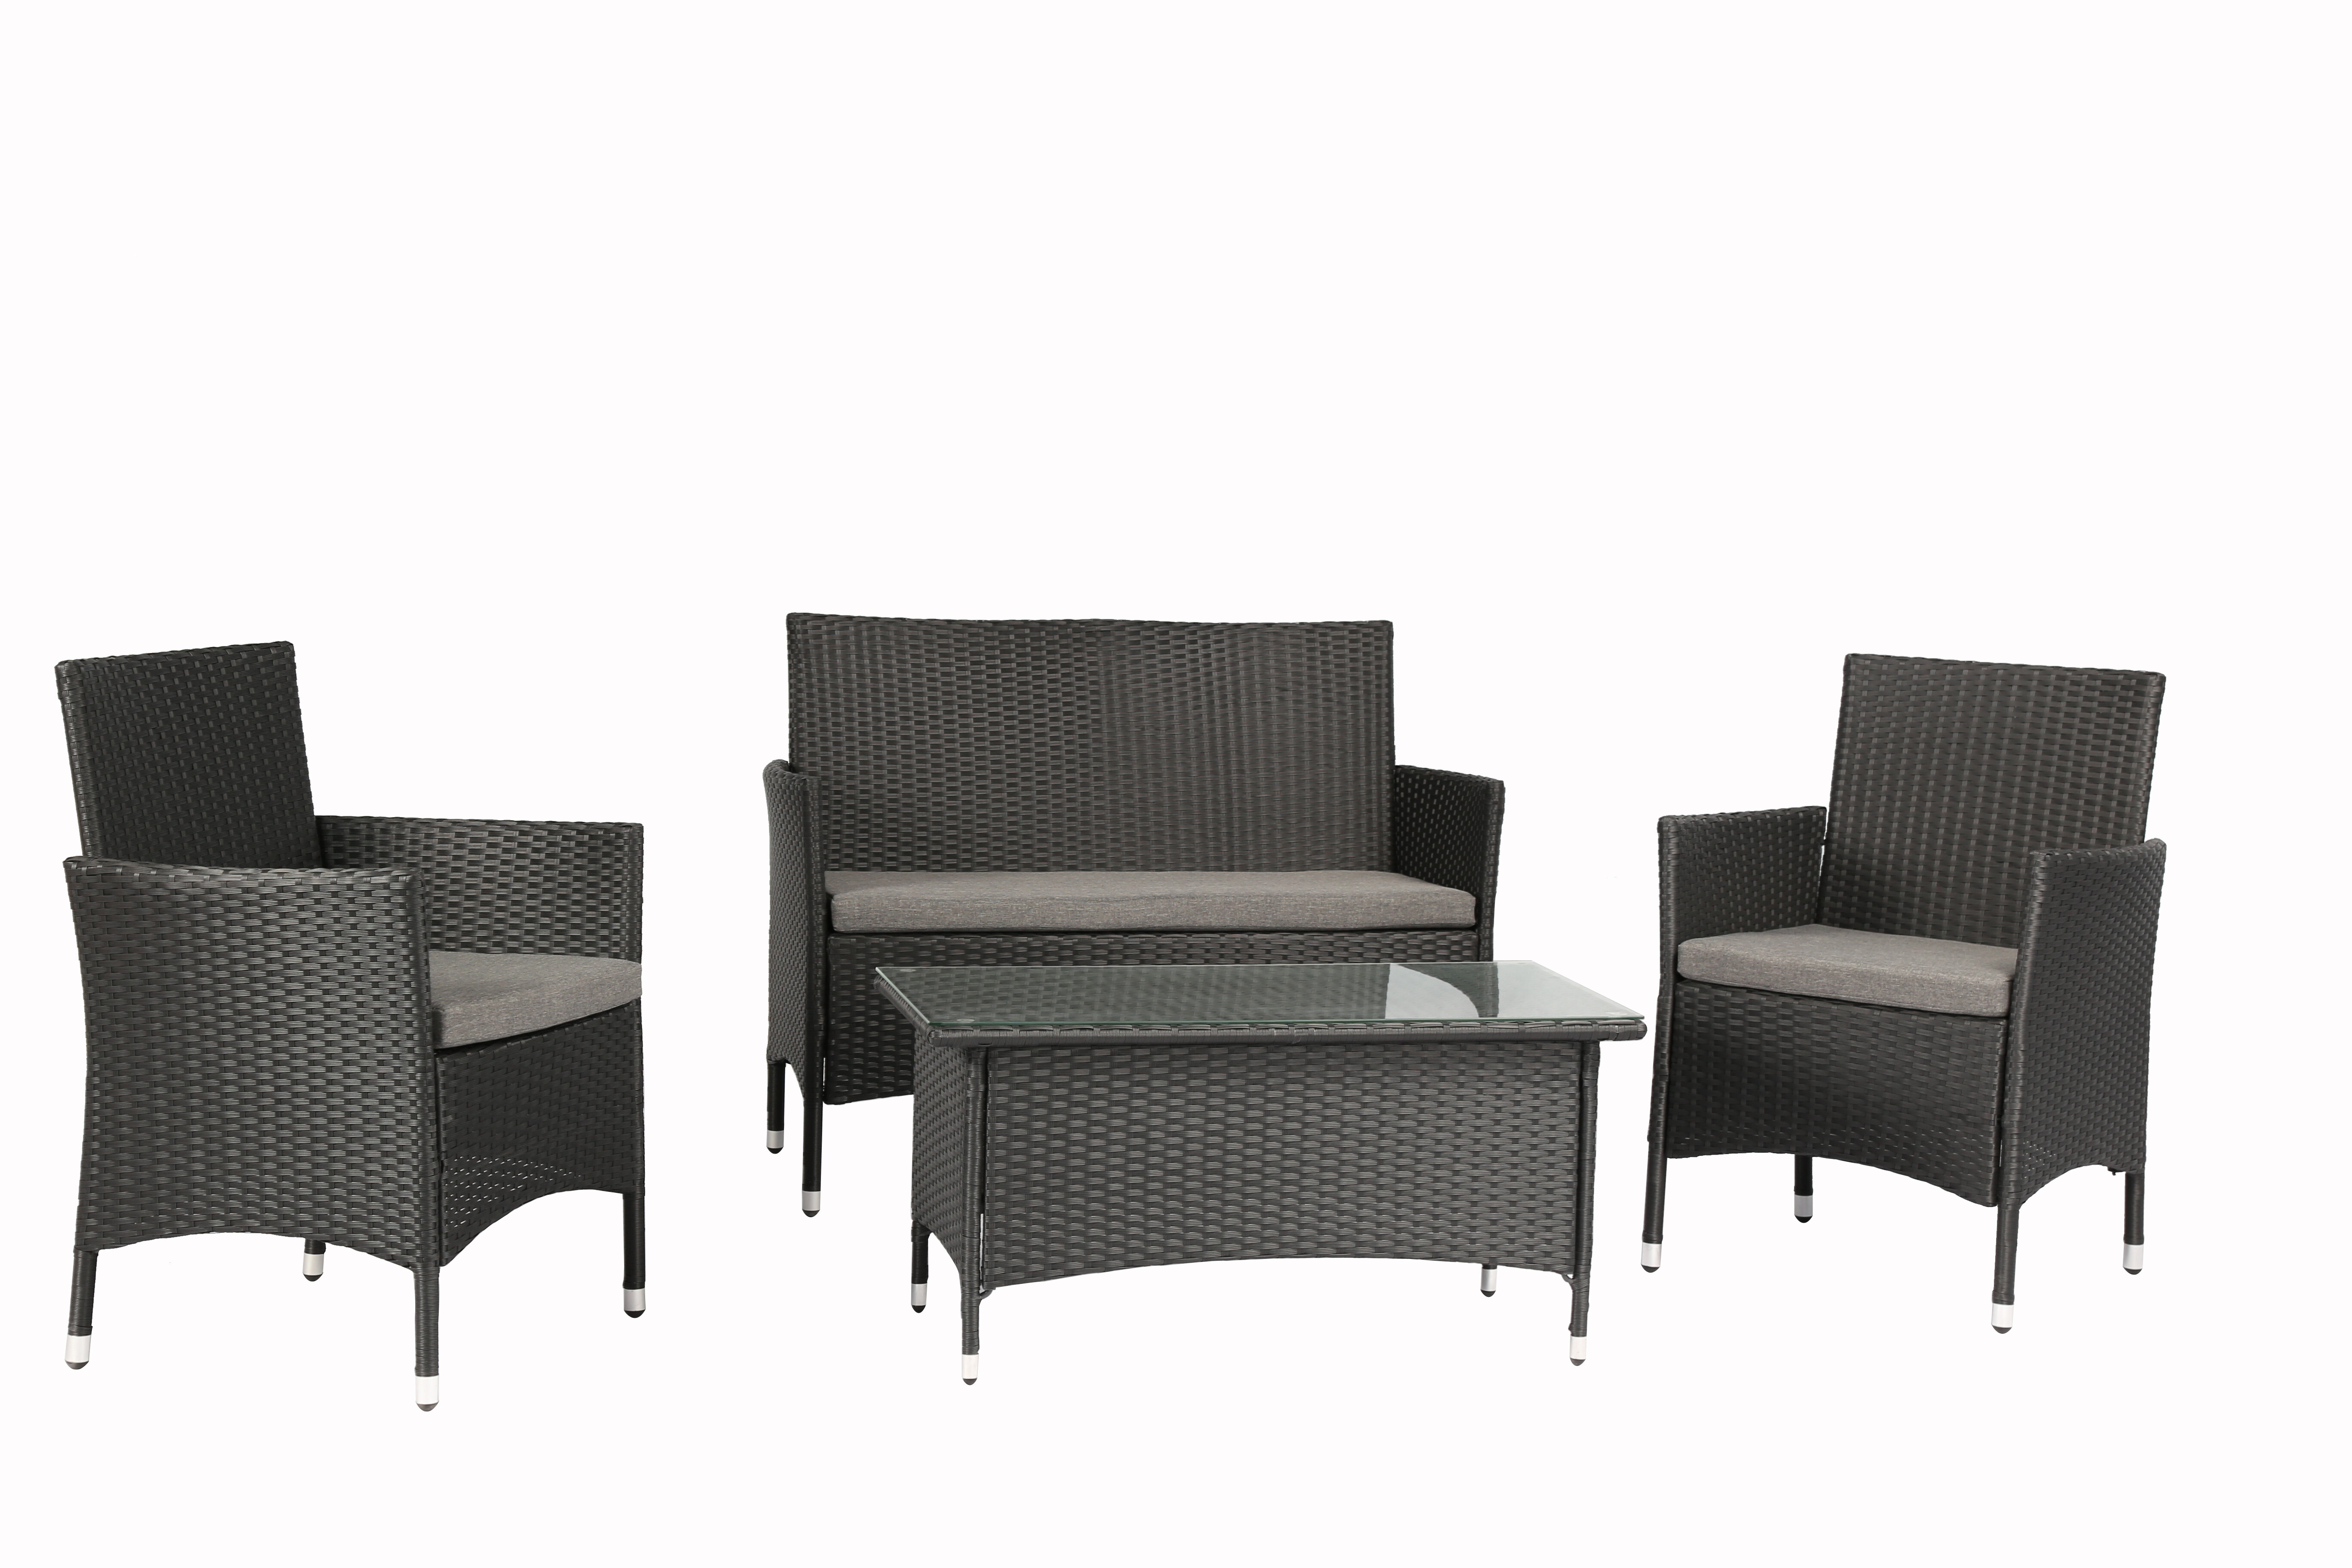 56cabf6432f Baner Garden 4 Piece Sofa Set with Cushions   Reviews